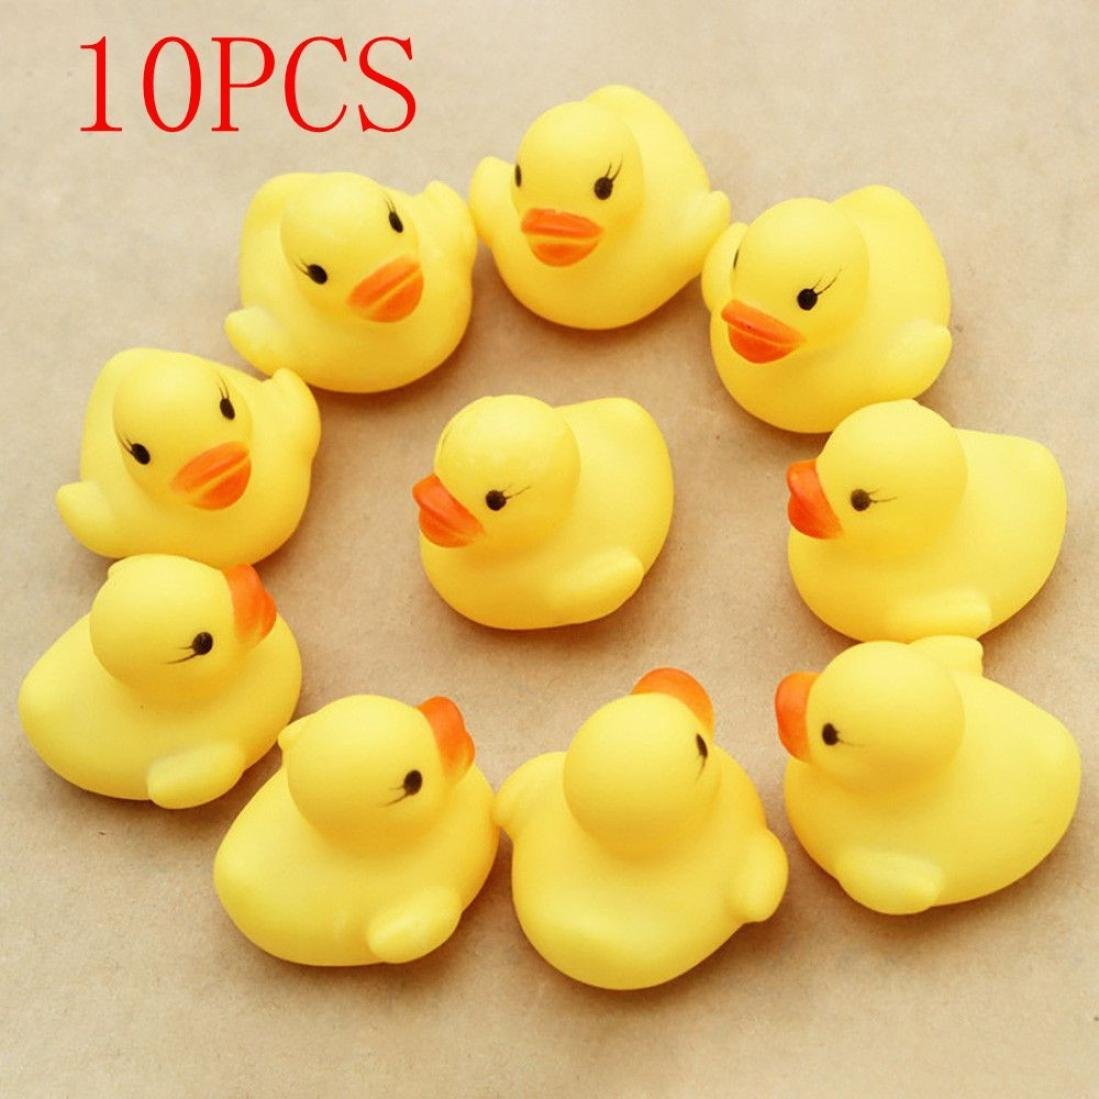 Sagton 10PC Duck Squishy Toy, Cute Squeezing Call Rubber Ducky Duckie for Baby Shower Birthday by Sagton (Image #2)